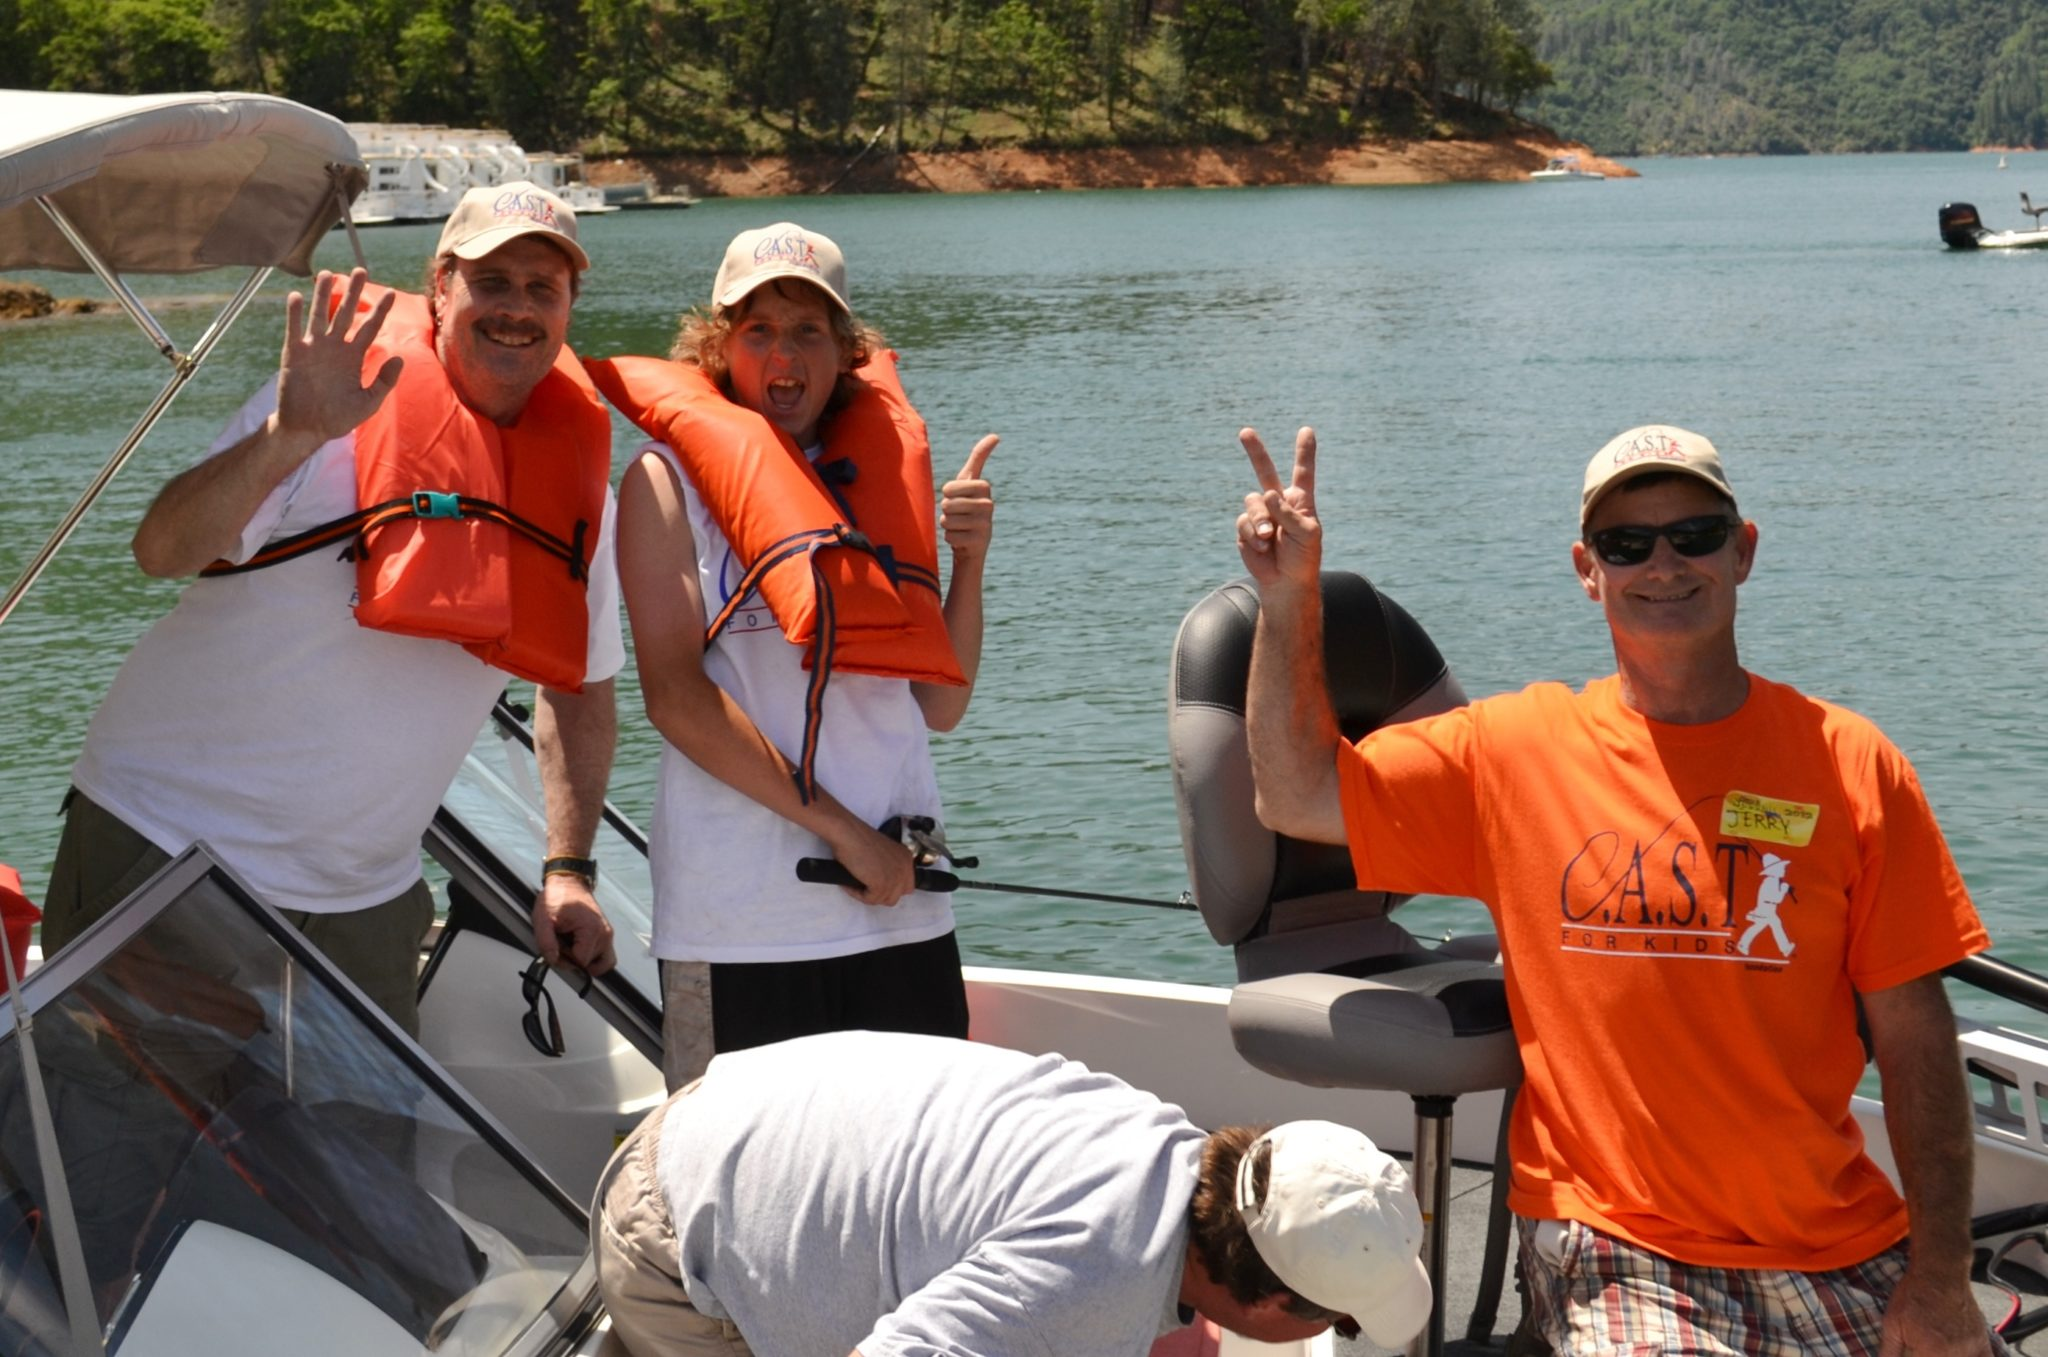 C.A.S.T. for Kids – Lake Shasta (CA)